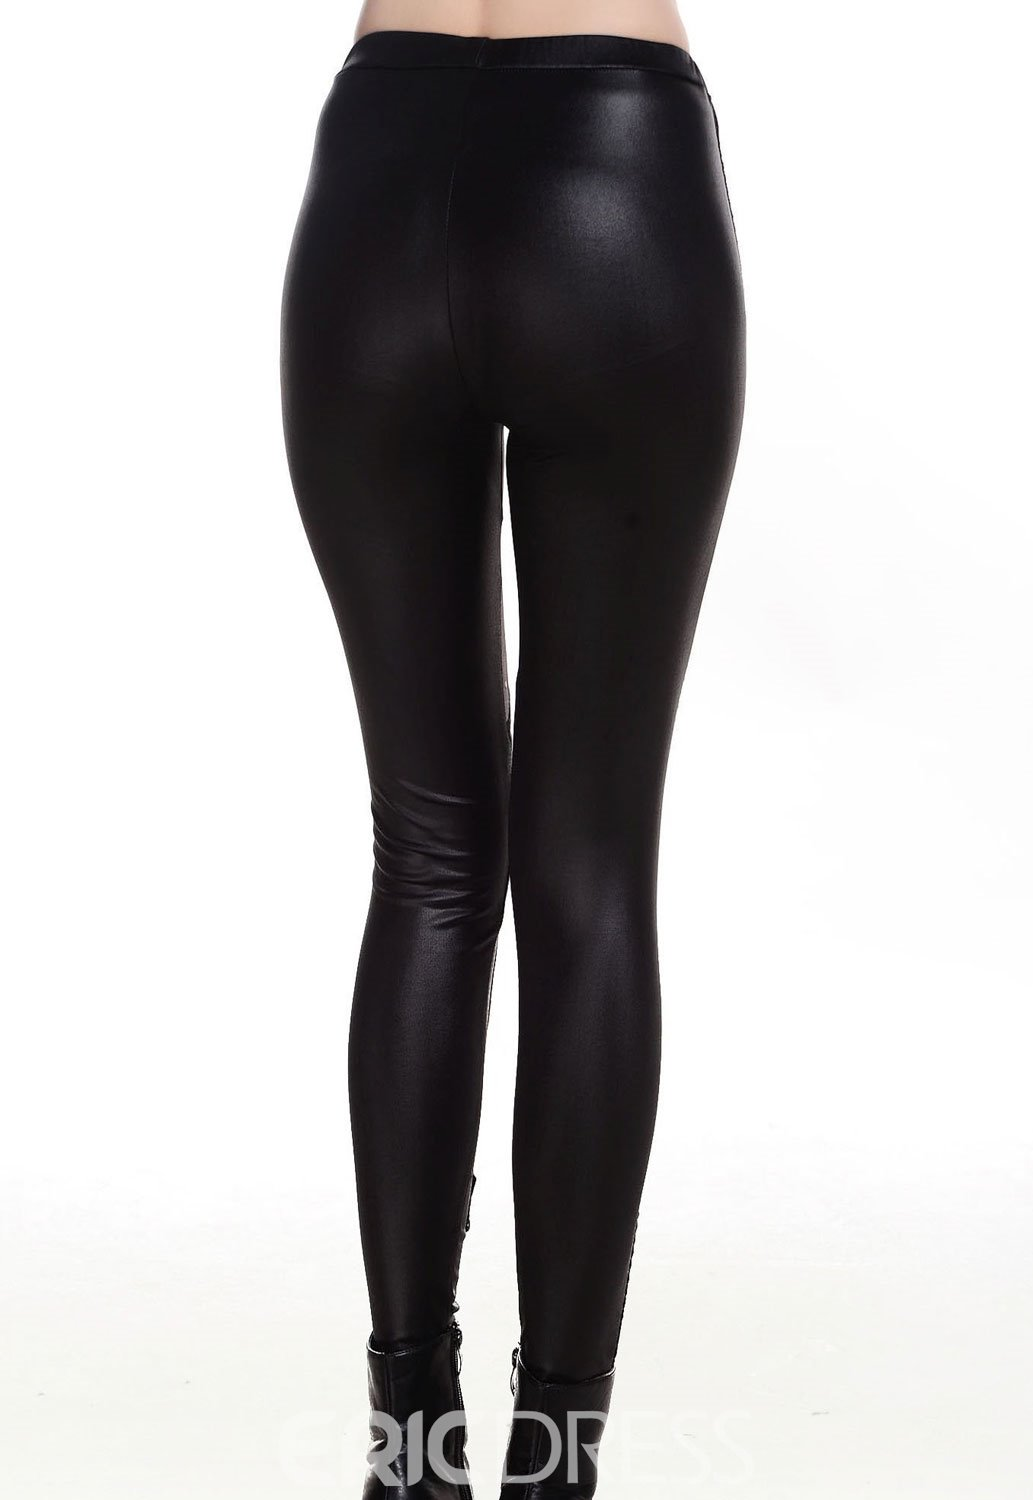 Punk Black Lace-up Faux Leather Gothic Tight Pant Legging